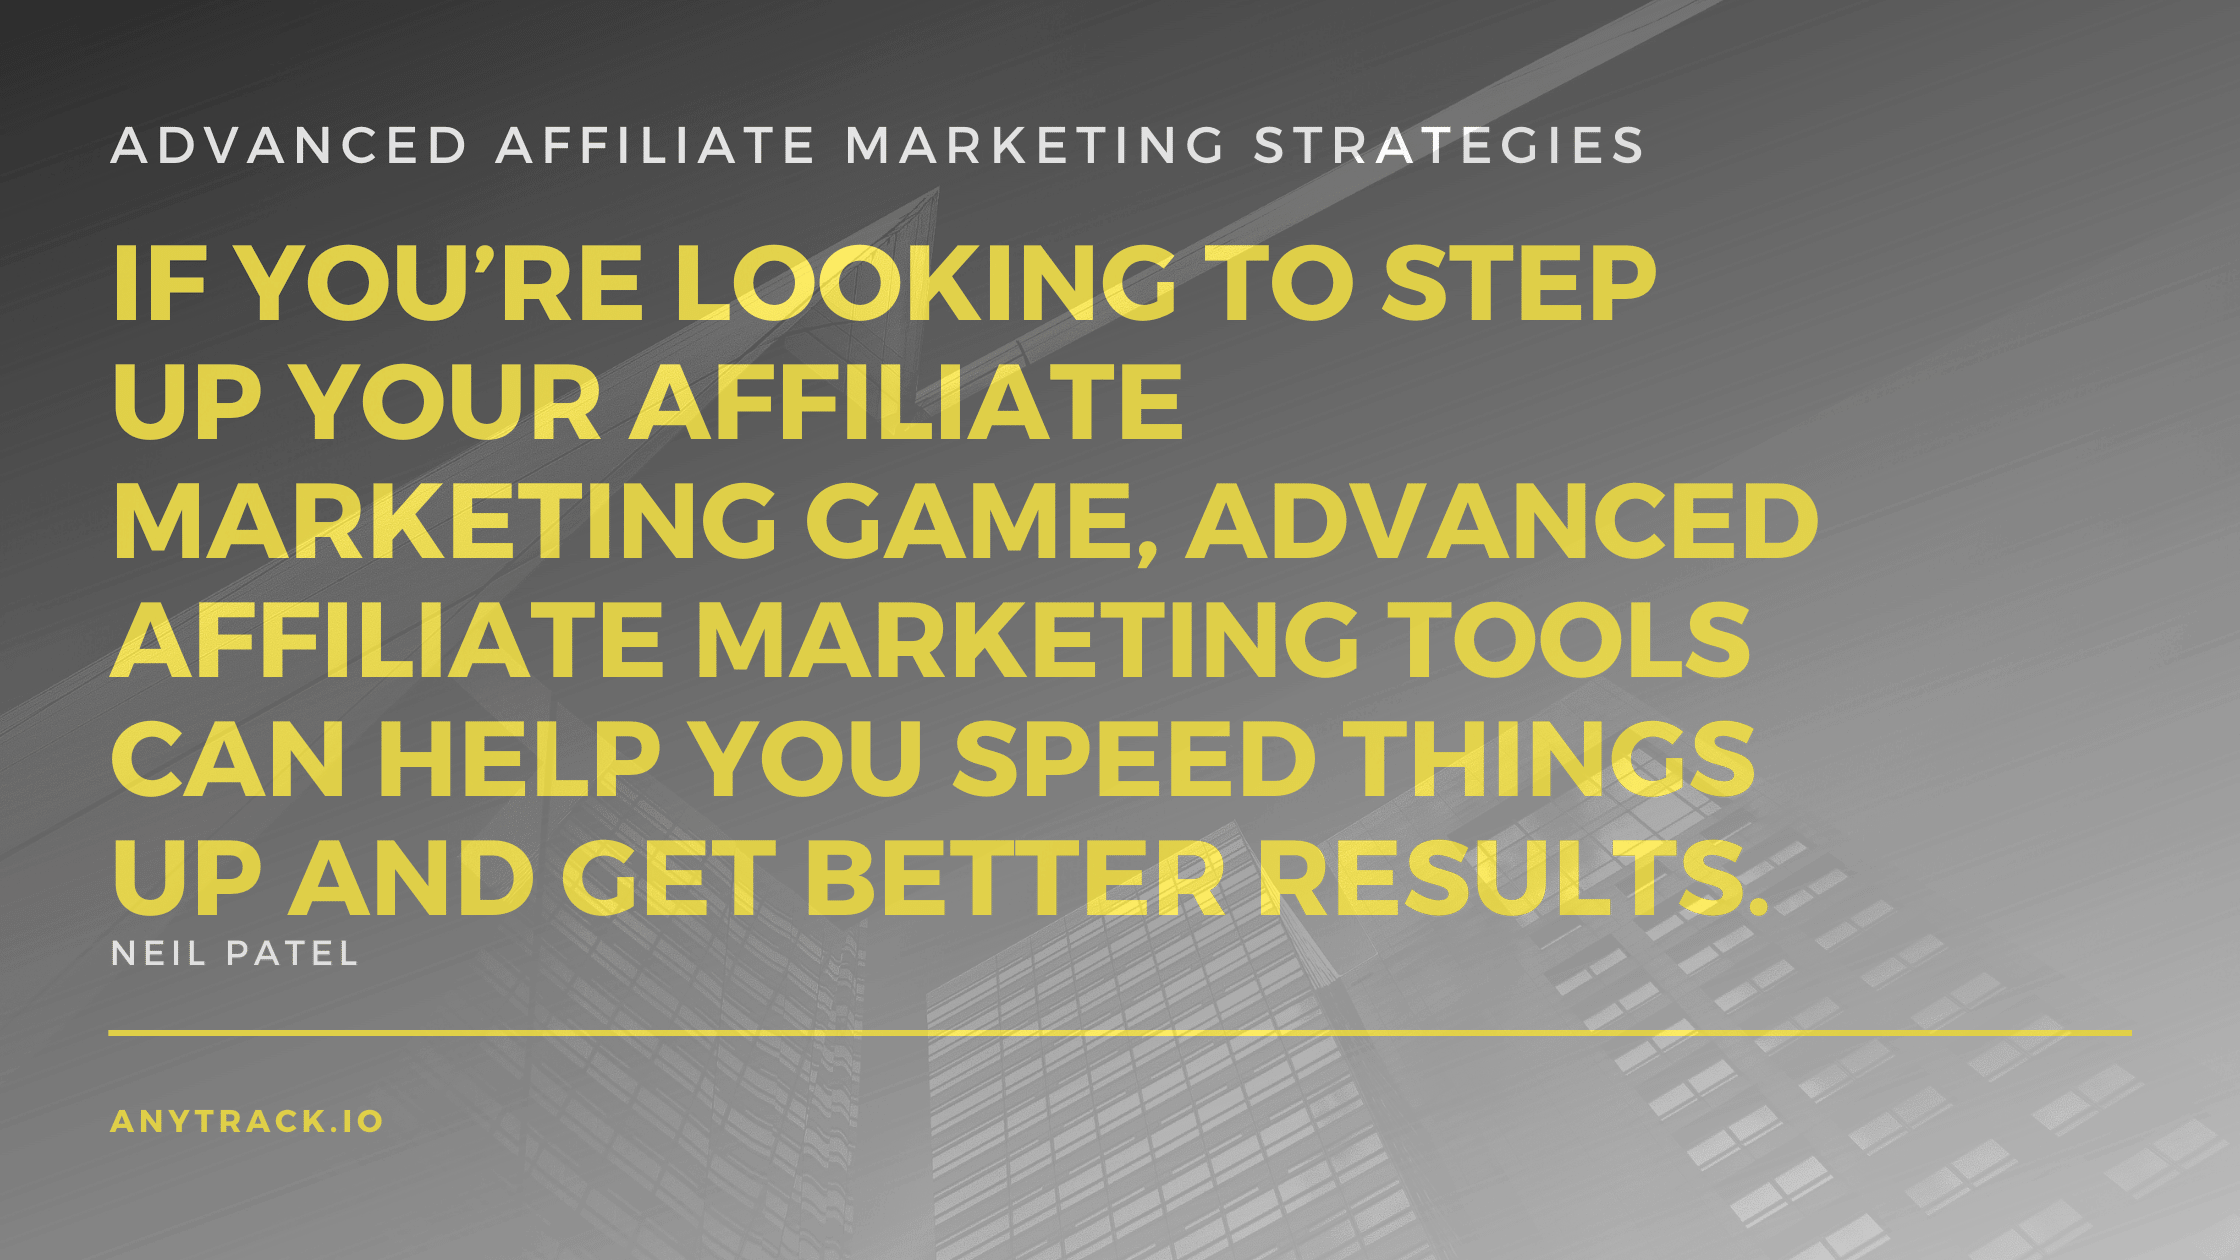 neil patel quote about advanced affiliate marketing strategies